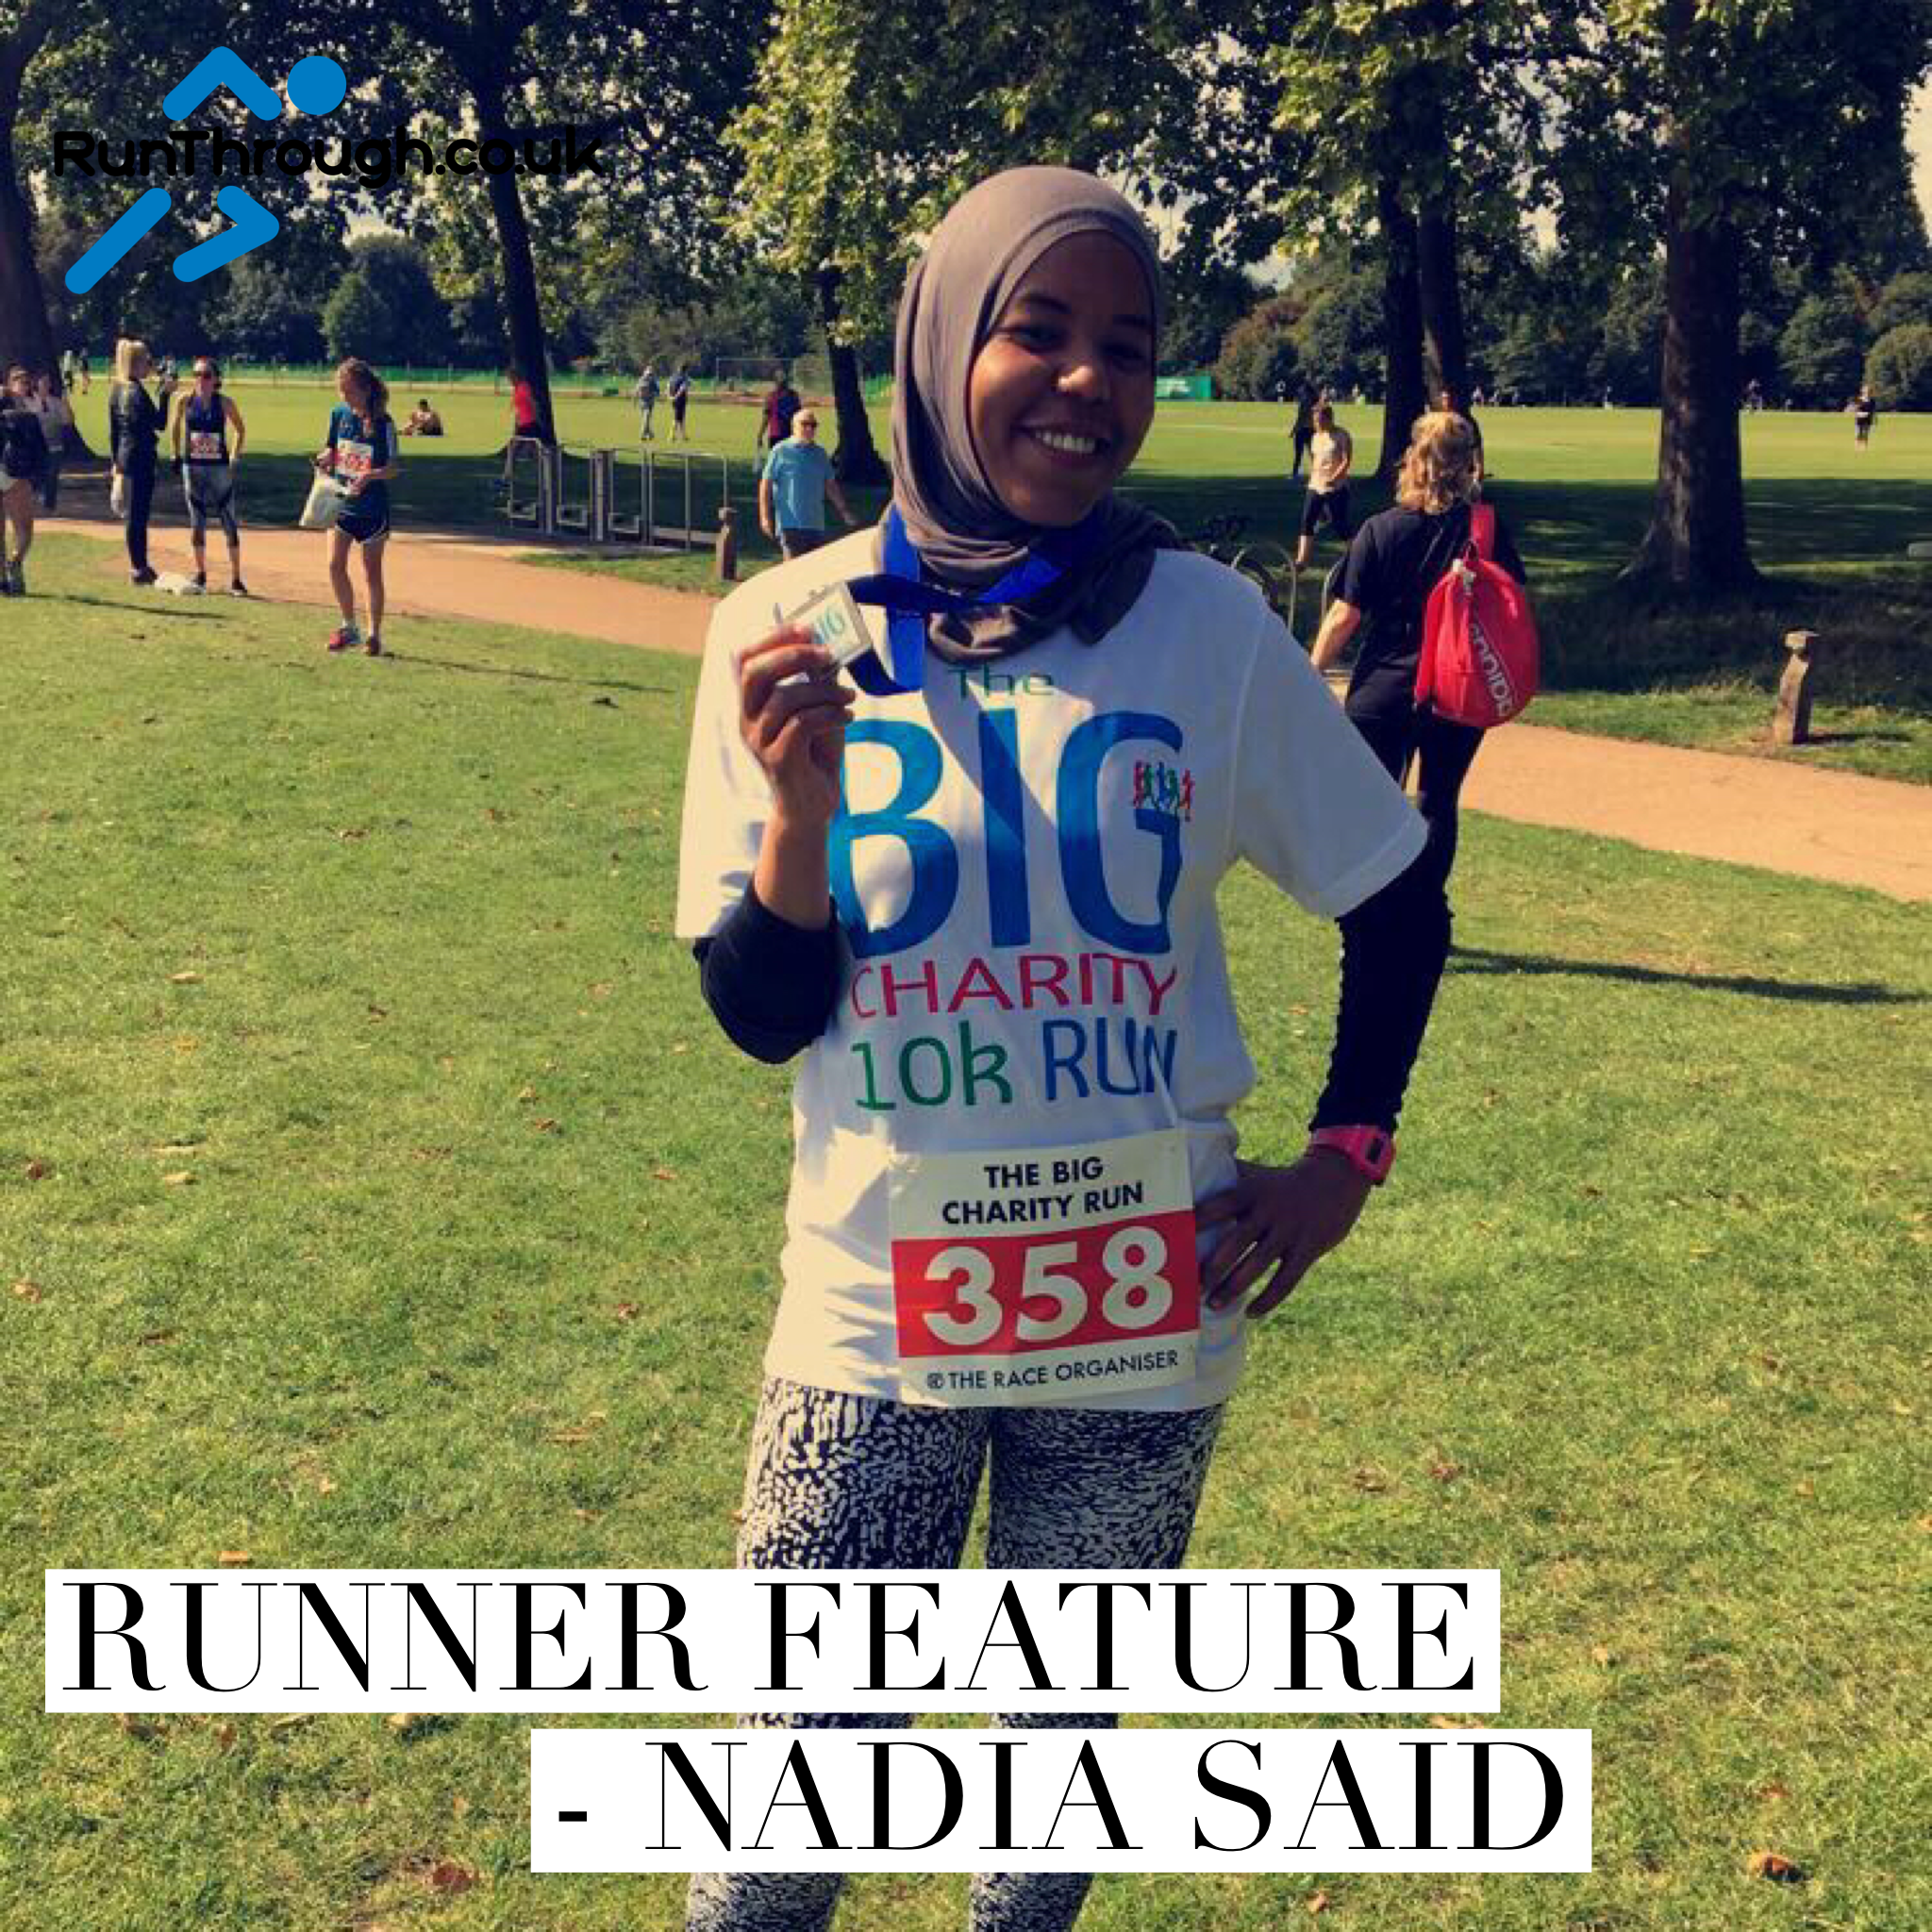 Runner Feature – Nadia Said